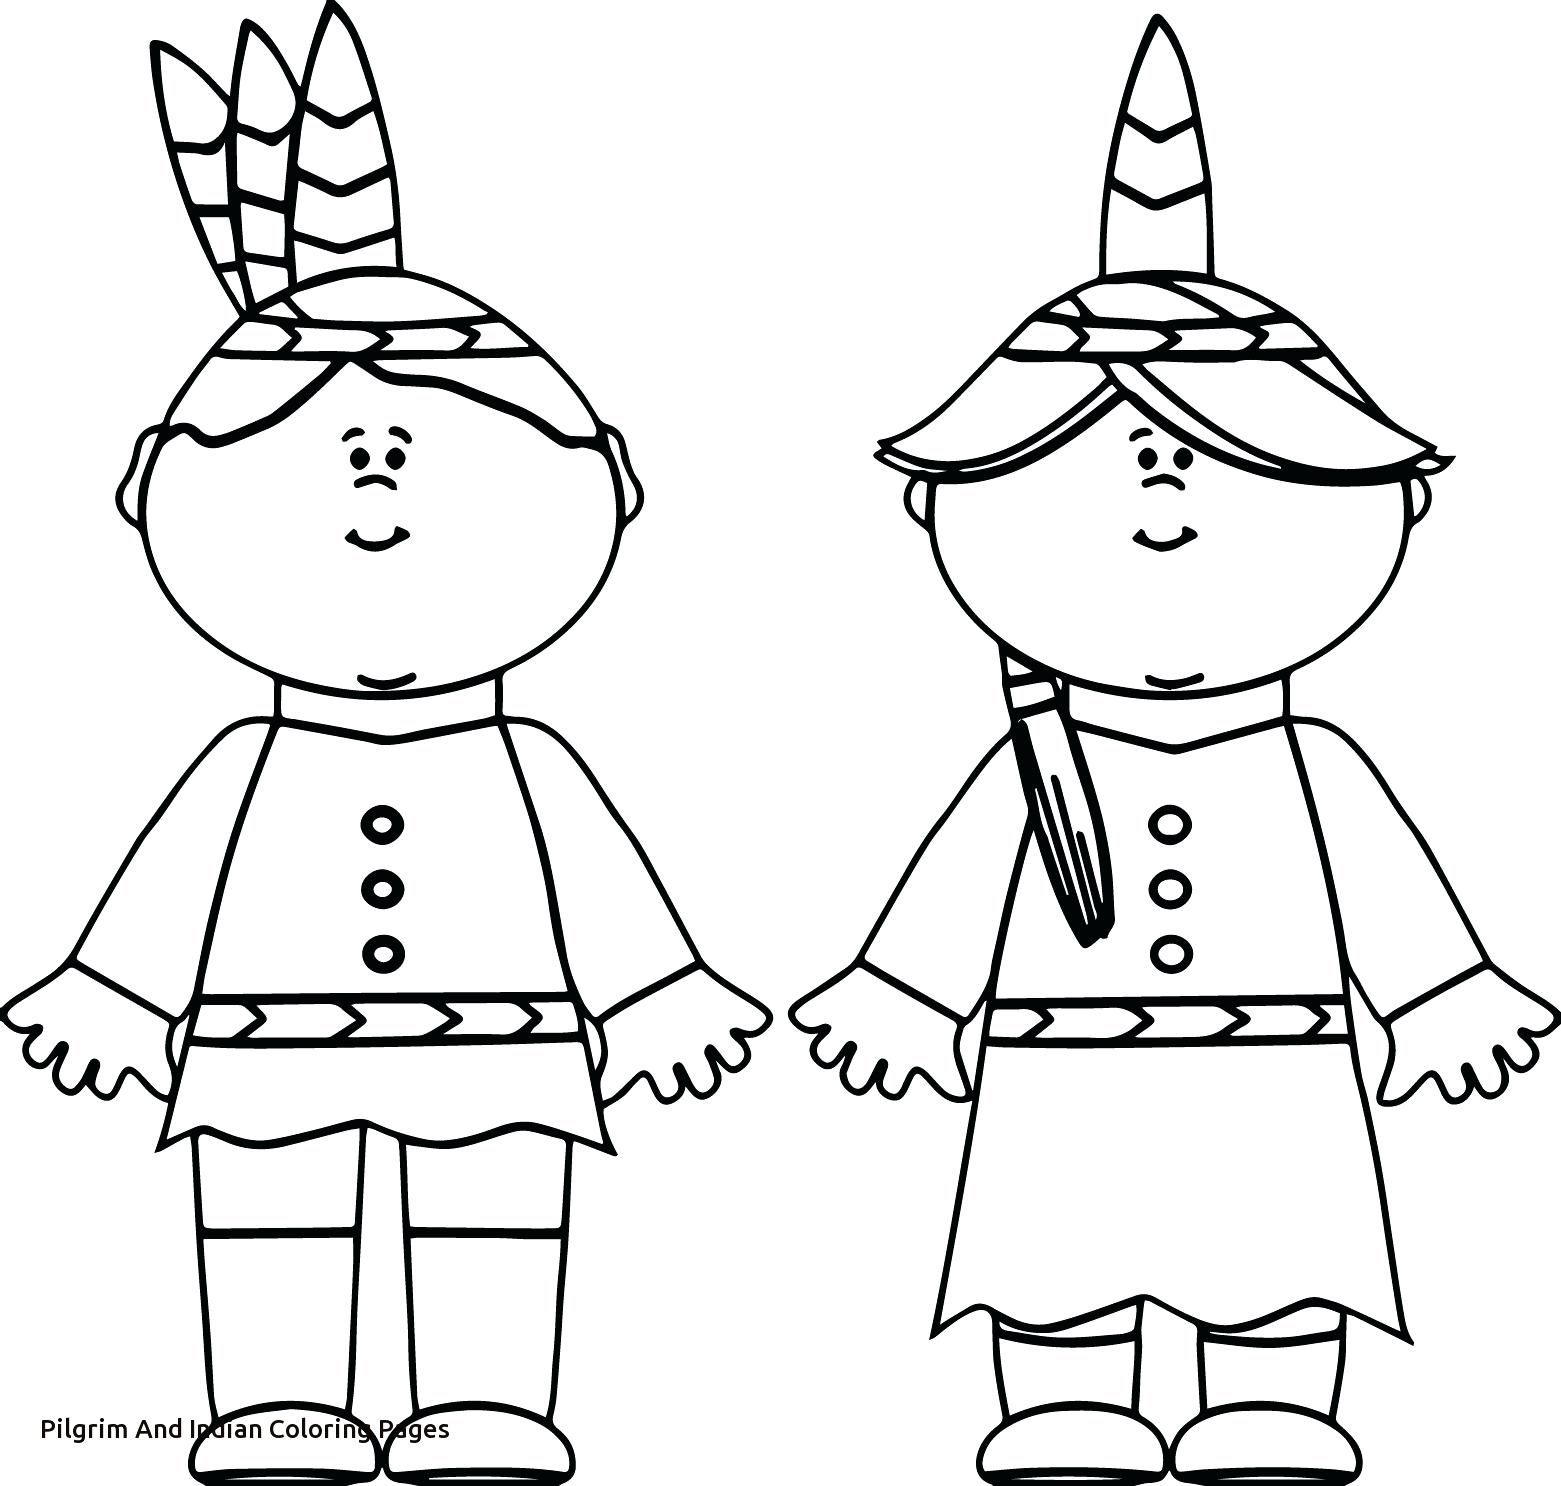 Pilgrims Coloring Pages Free Download Thanksgiving Coloring Pages Toy Story Coloring Pages Coloring Pages For Girls